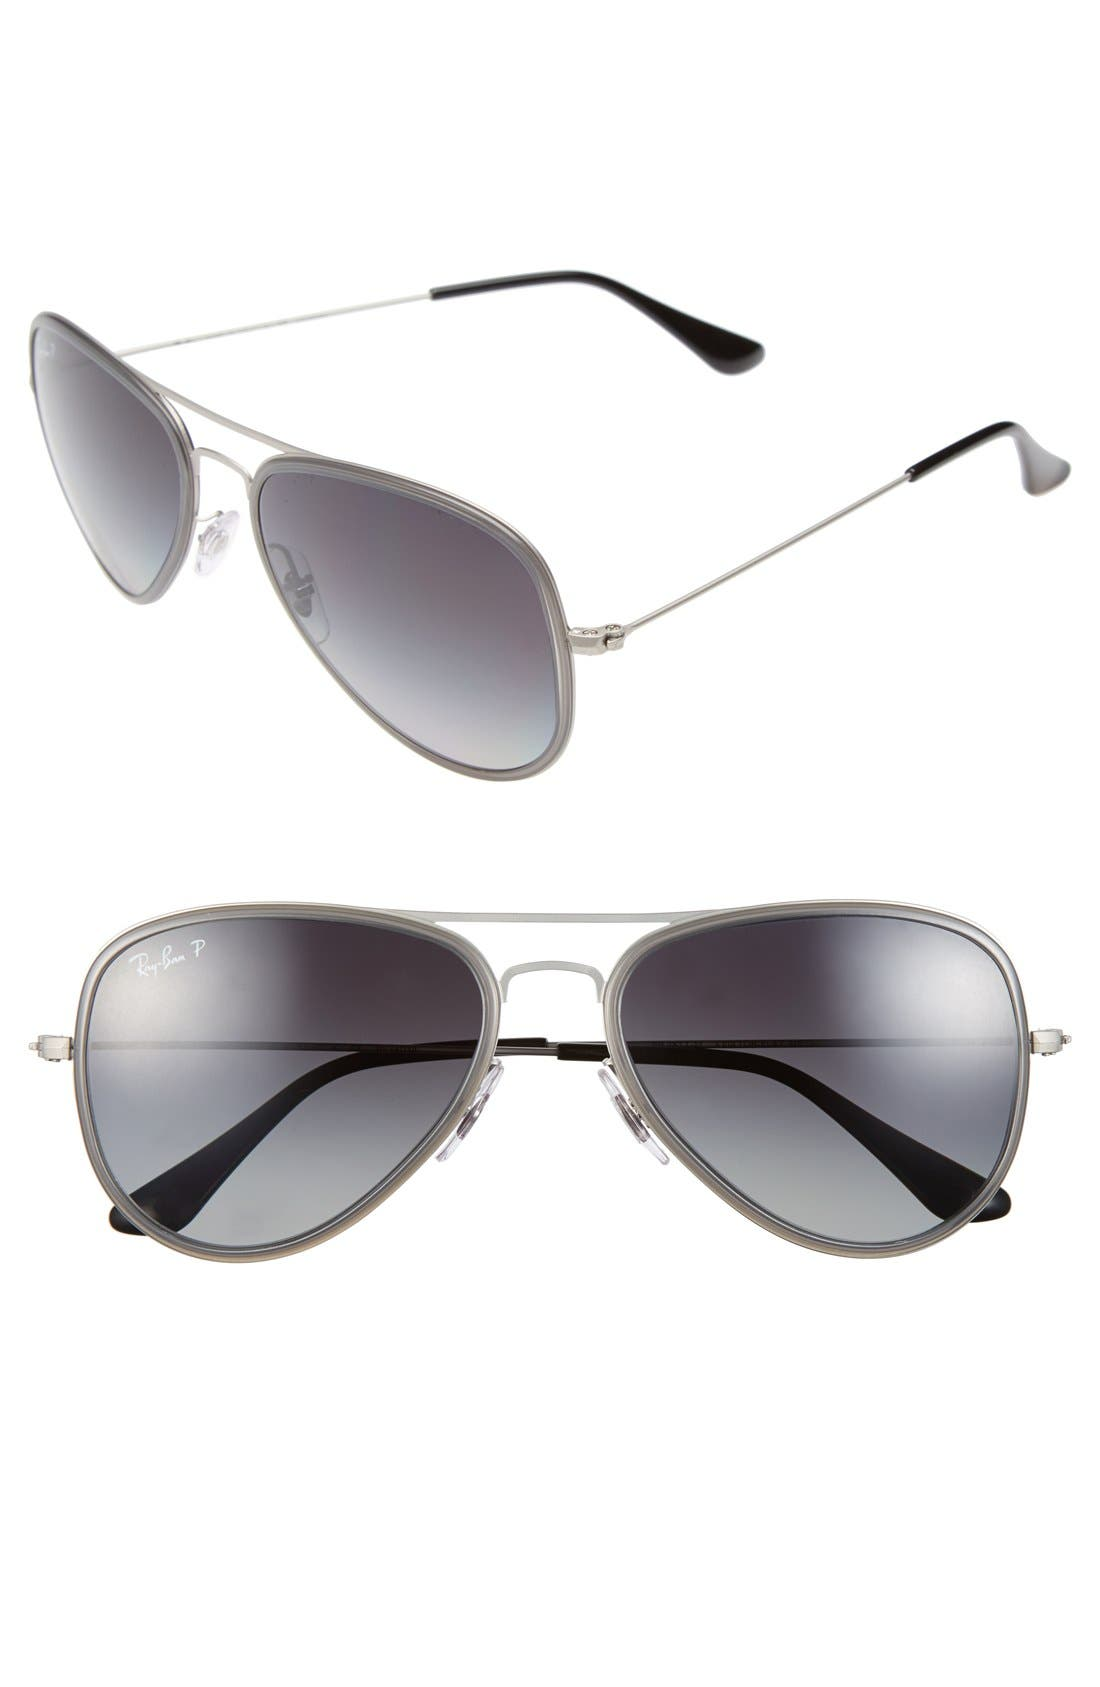 Alternate Image 1 Selected - Ray-Ban 'Icon' 56mm Polarized Aviator Sunglasses